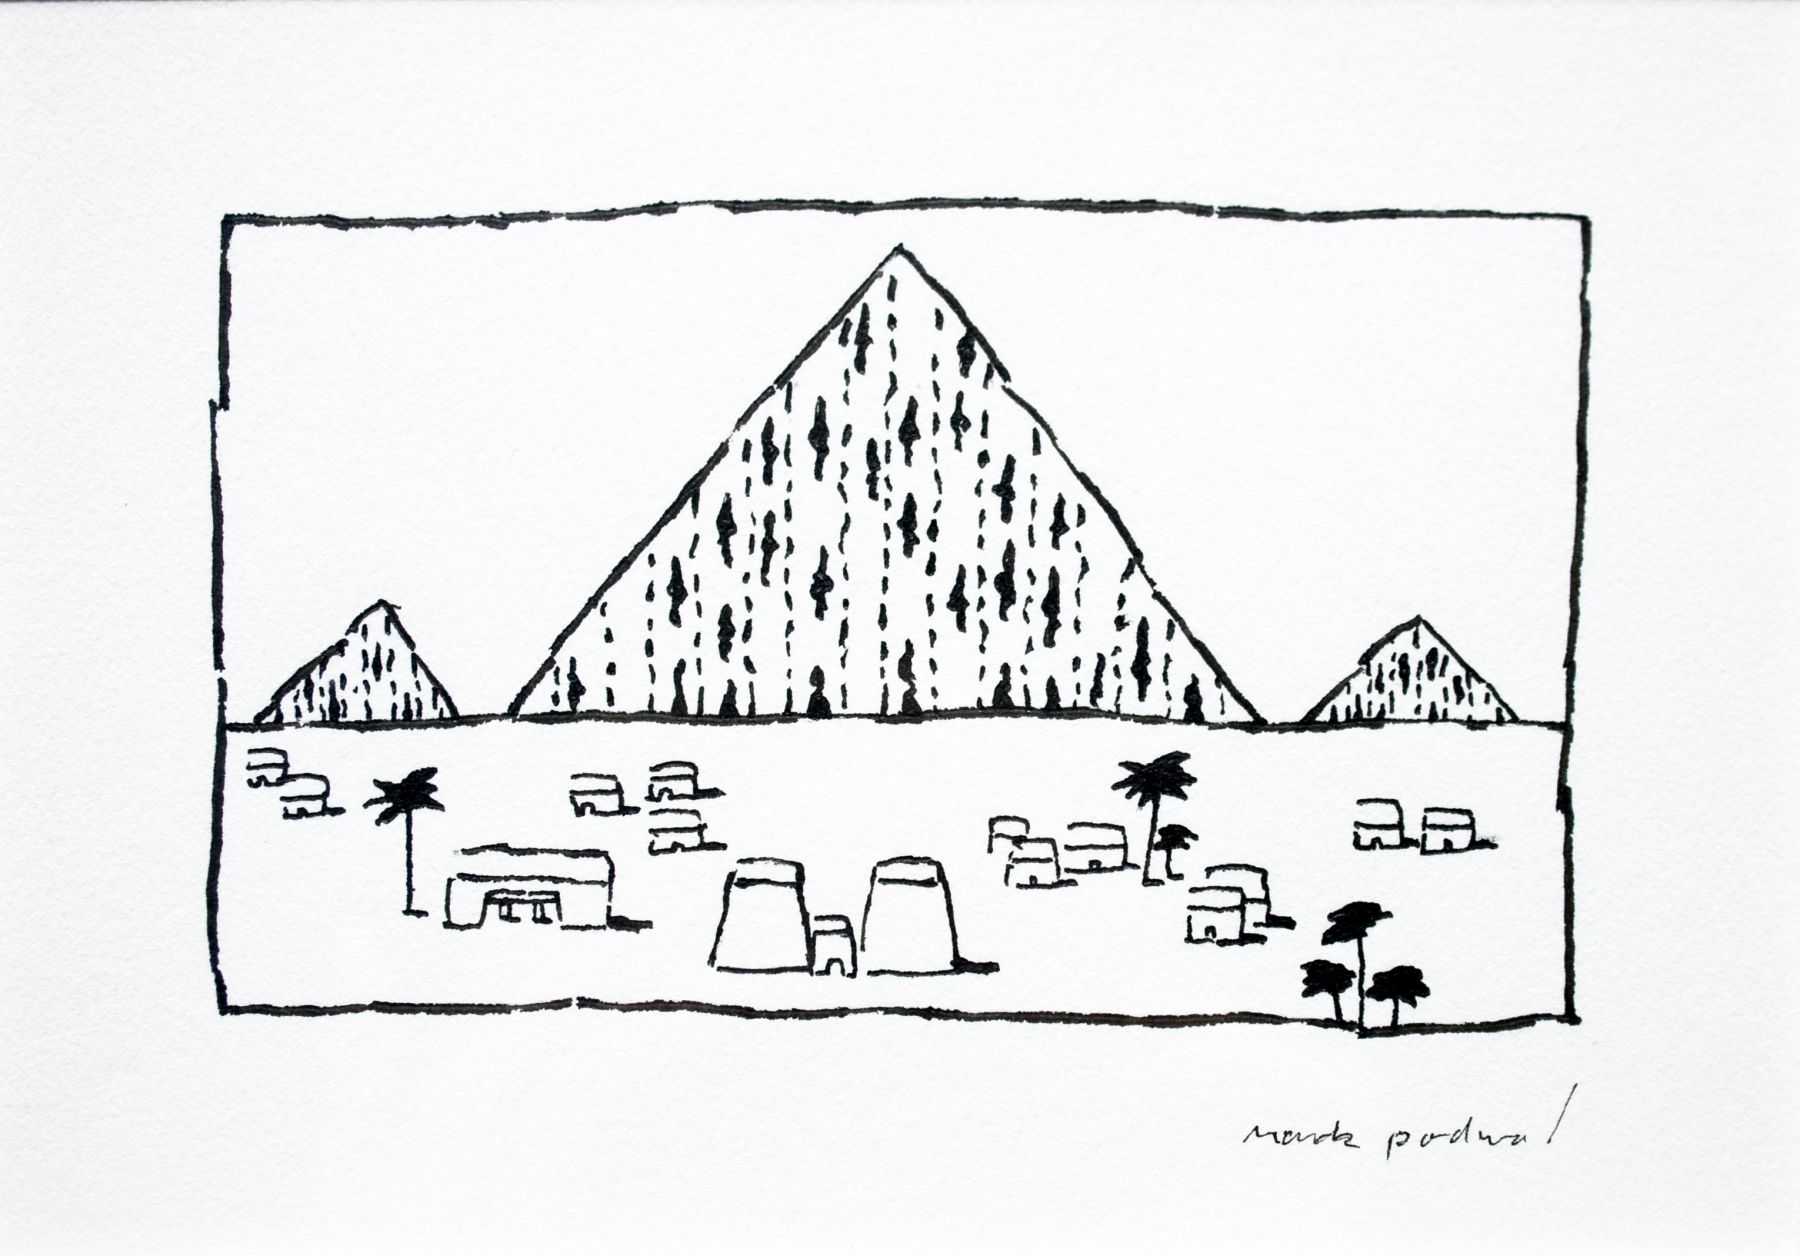 mark podwal, The Bread of Affliction (from Elie Wiesel, A Passover Haggadah), 1991, ink on paper, 3 x 4 1/2 inches